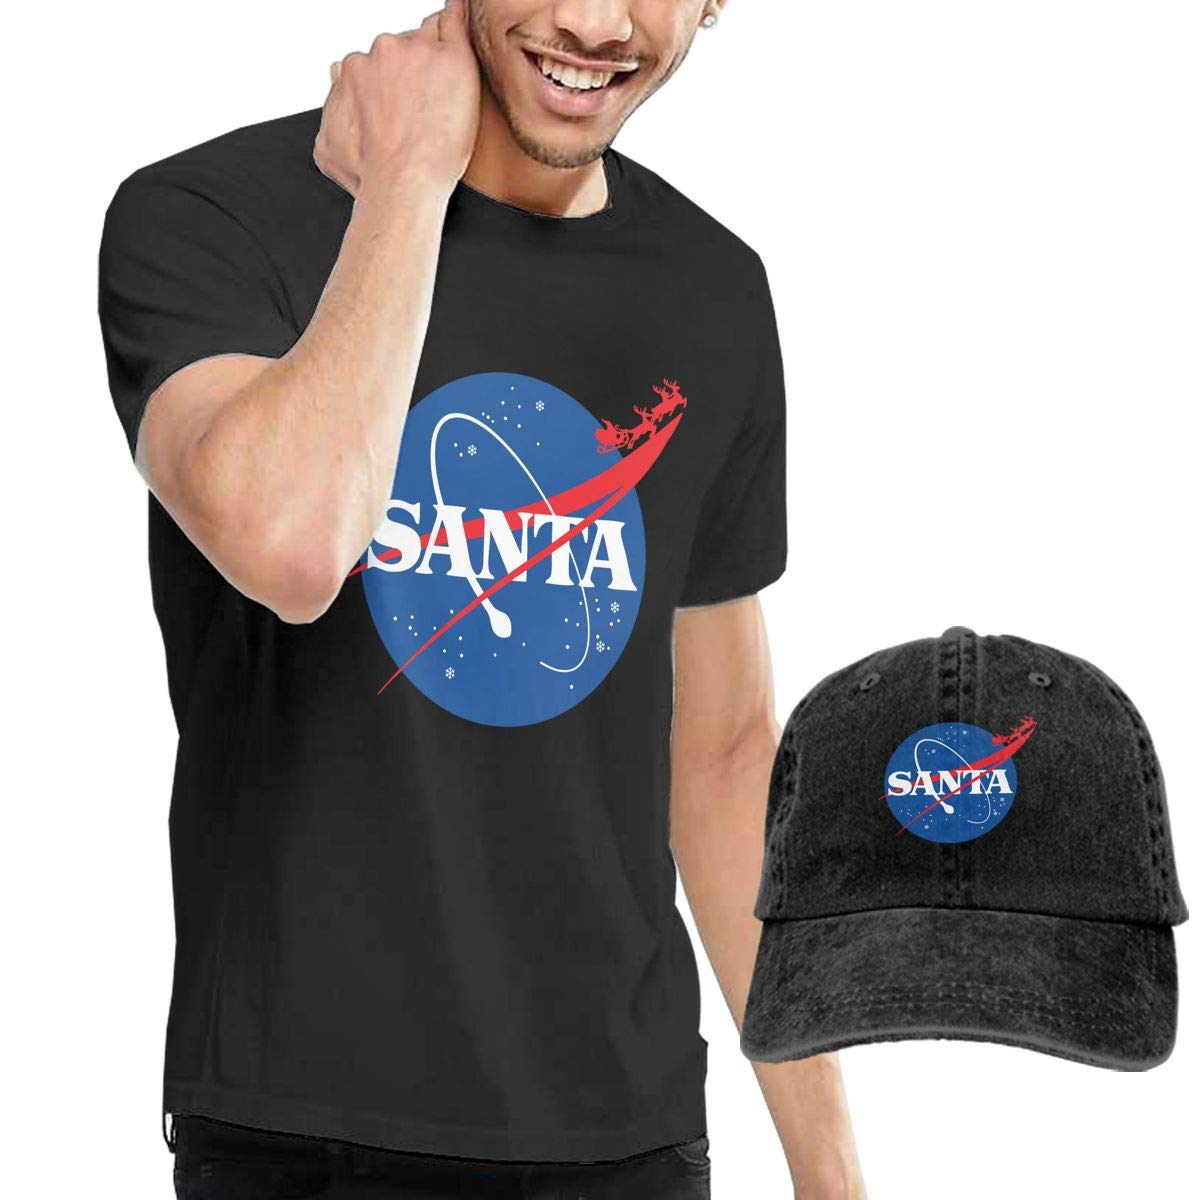 WWTBBJ-B Santa Funny Christmas Adult Mens Summertime T Shirts and Sports Jean Hat